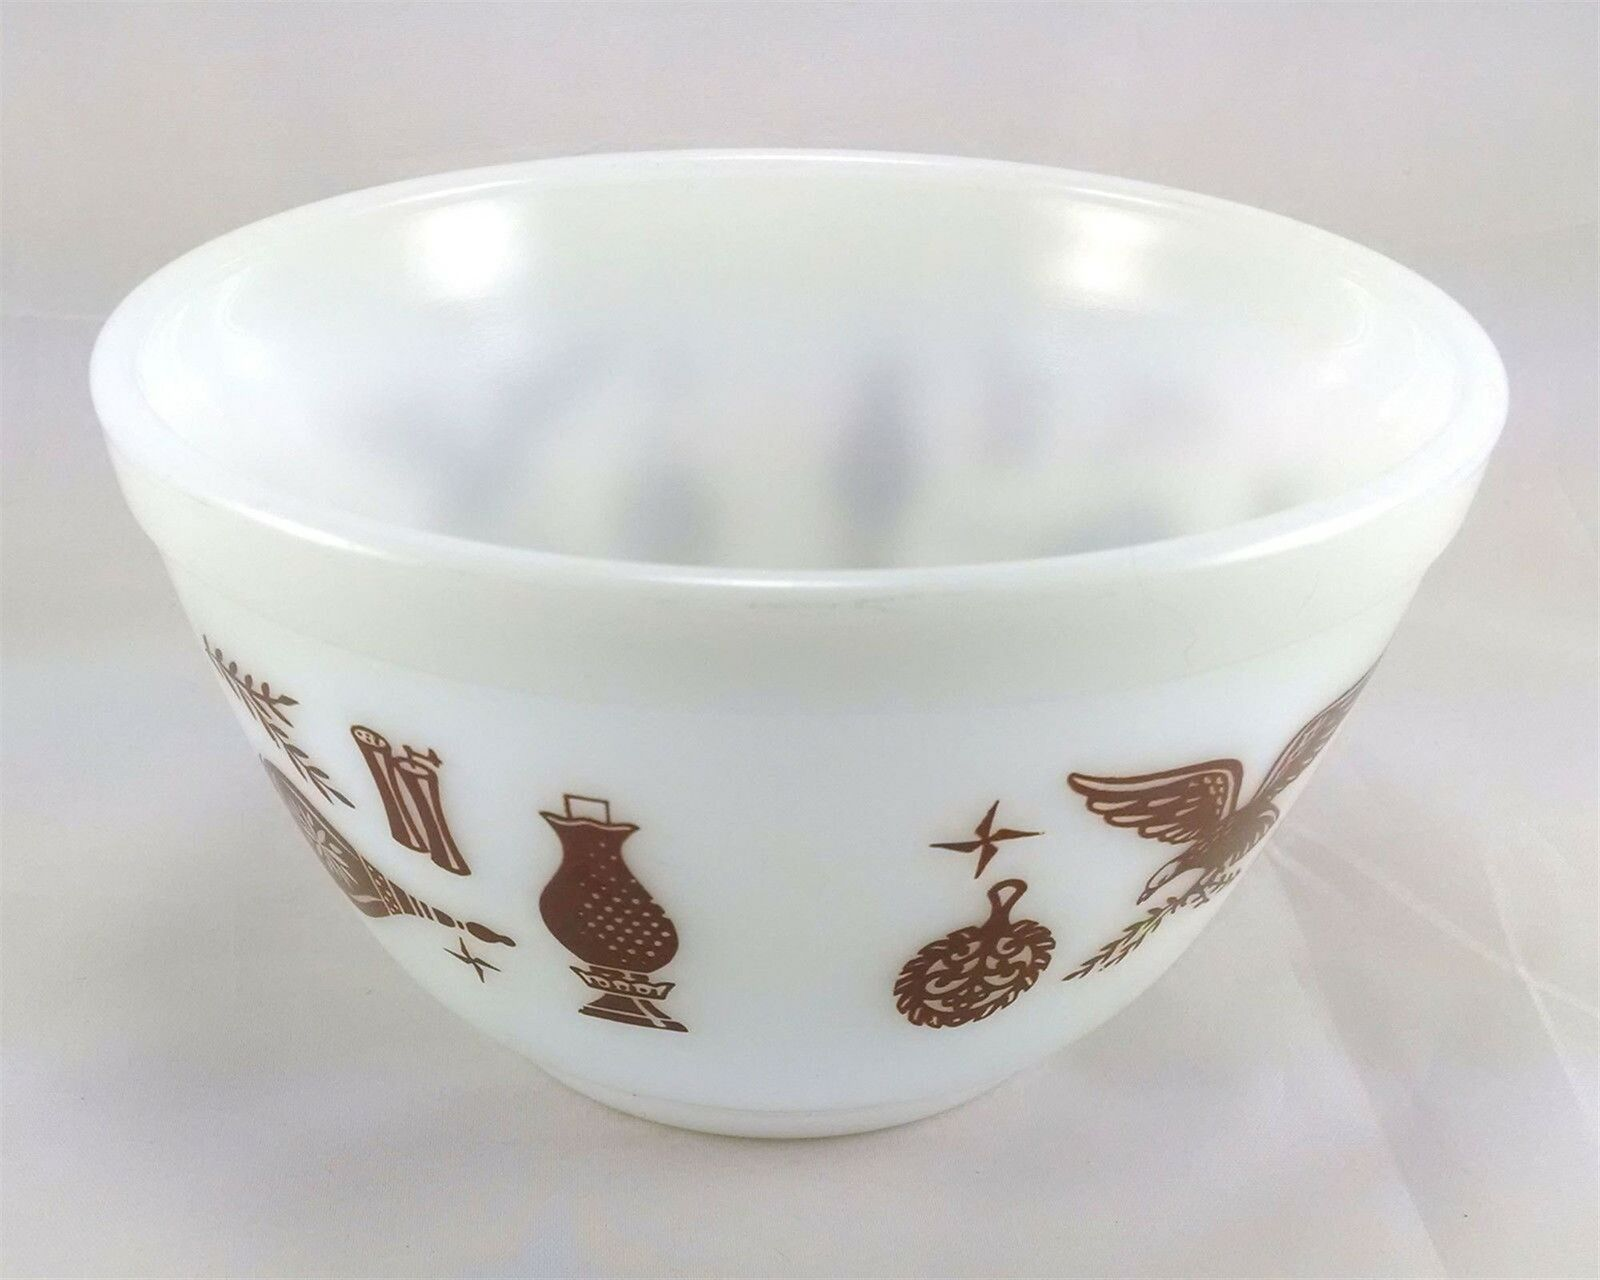 Pyrex 401 Americana 1 1/2 Pint Vintage Serving Mixing Bowl image 2